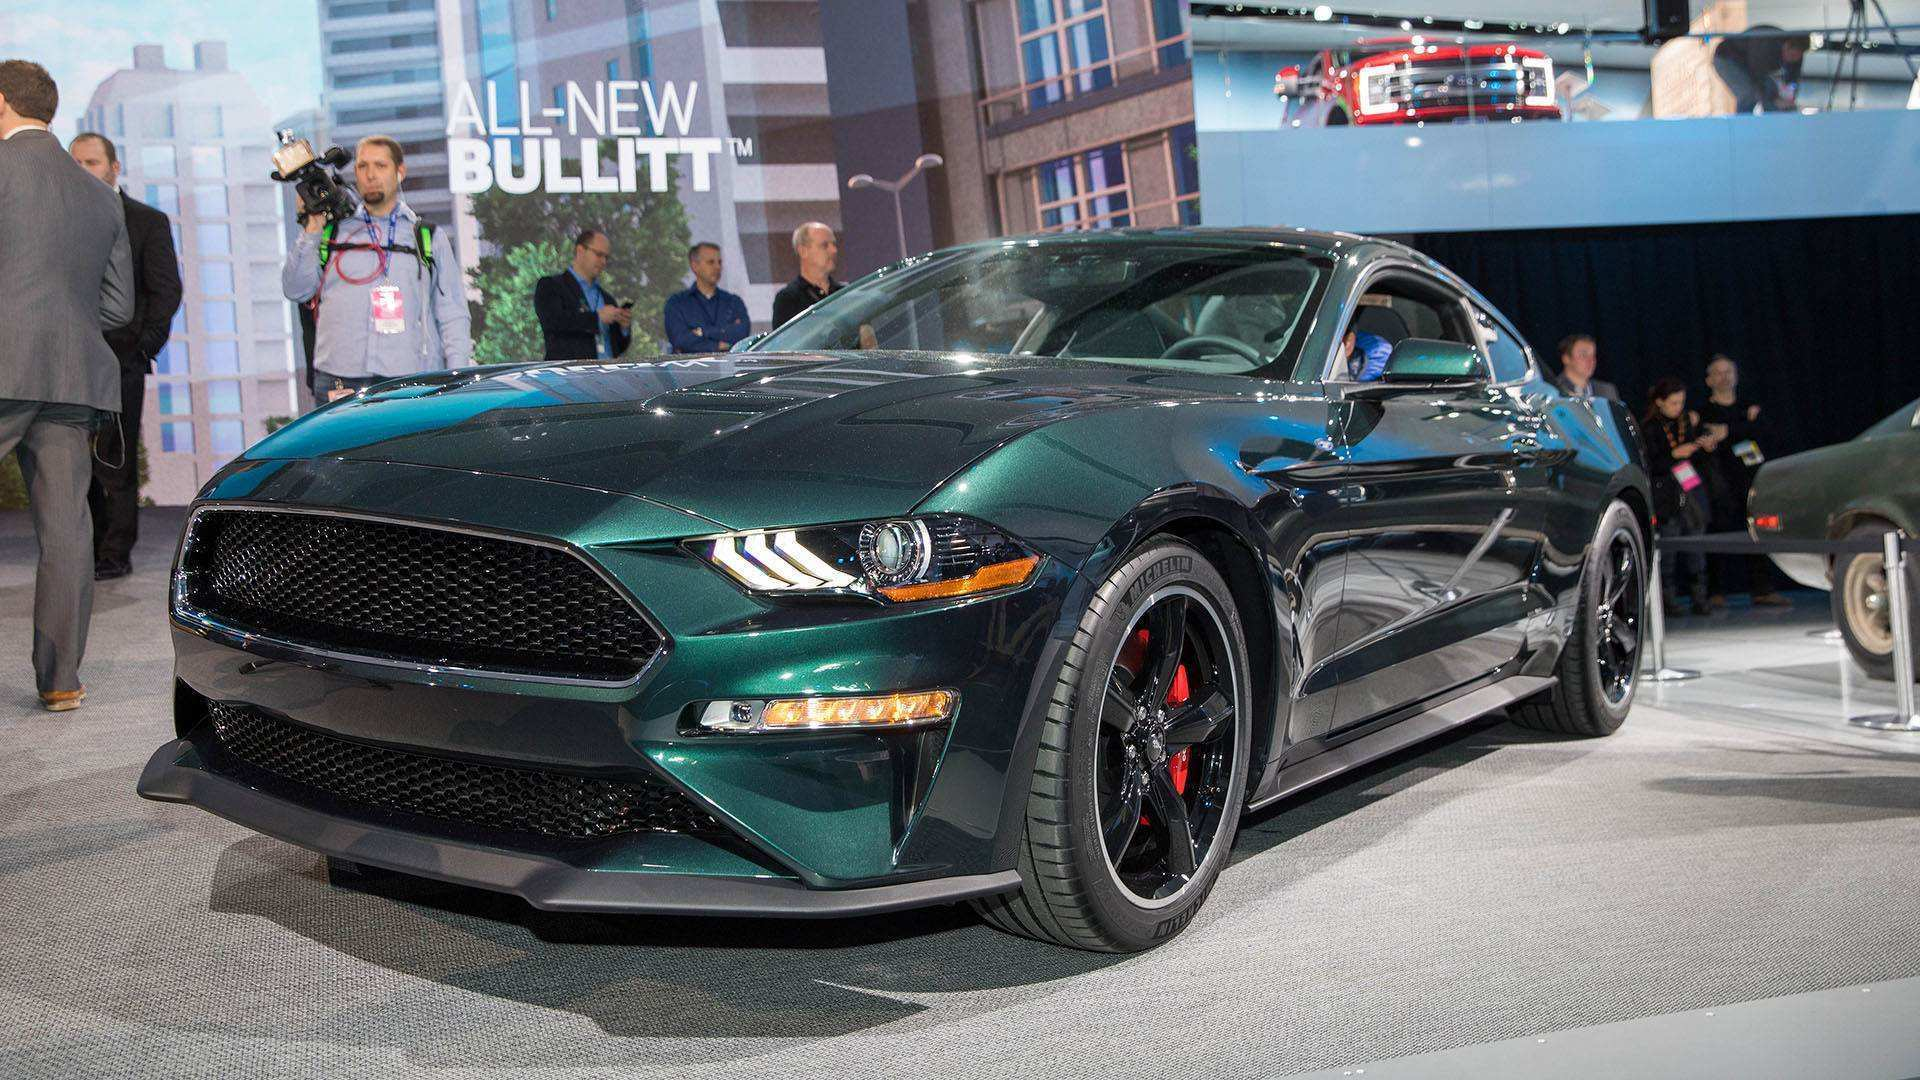 68 The Best 2019 Mustang Photos